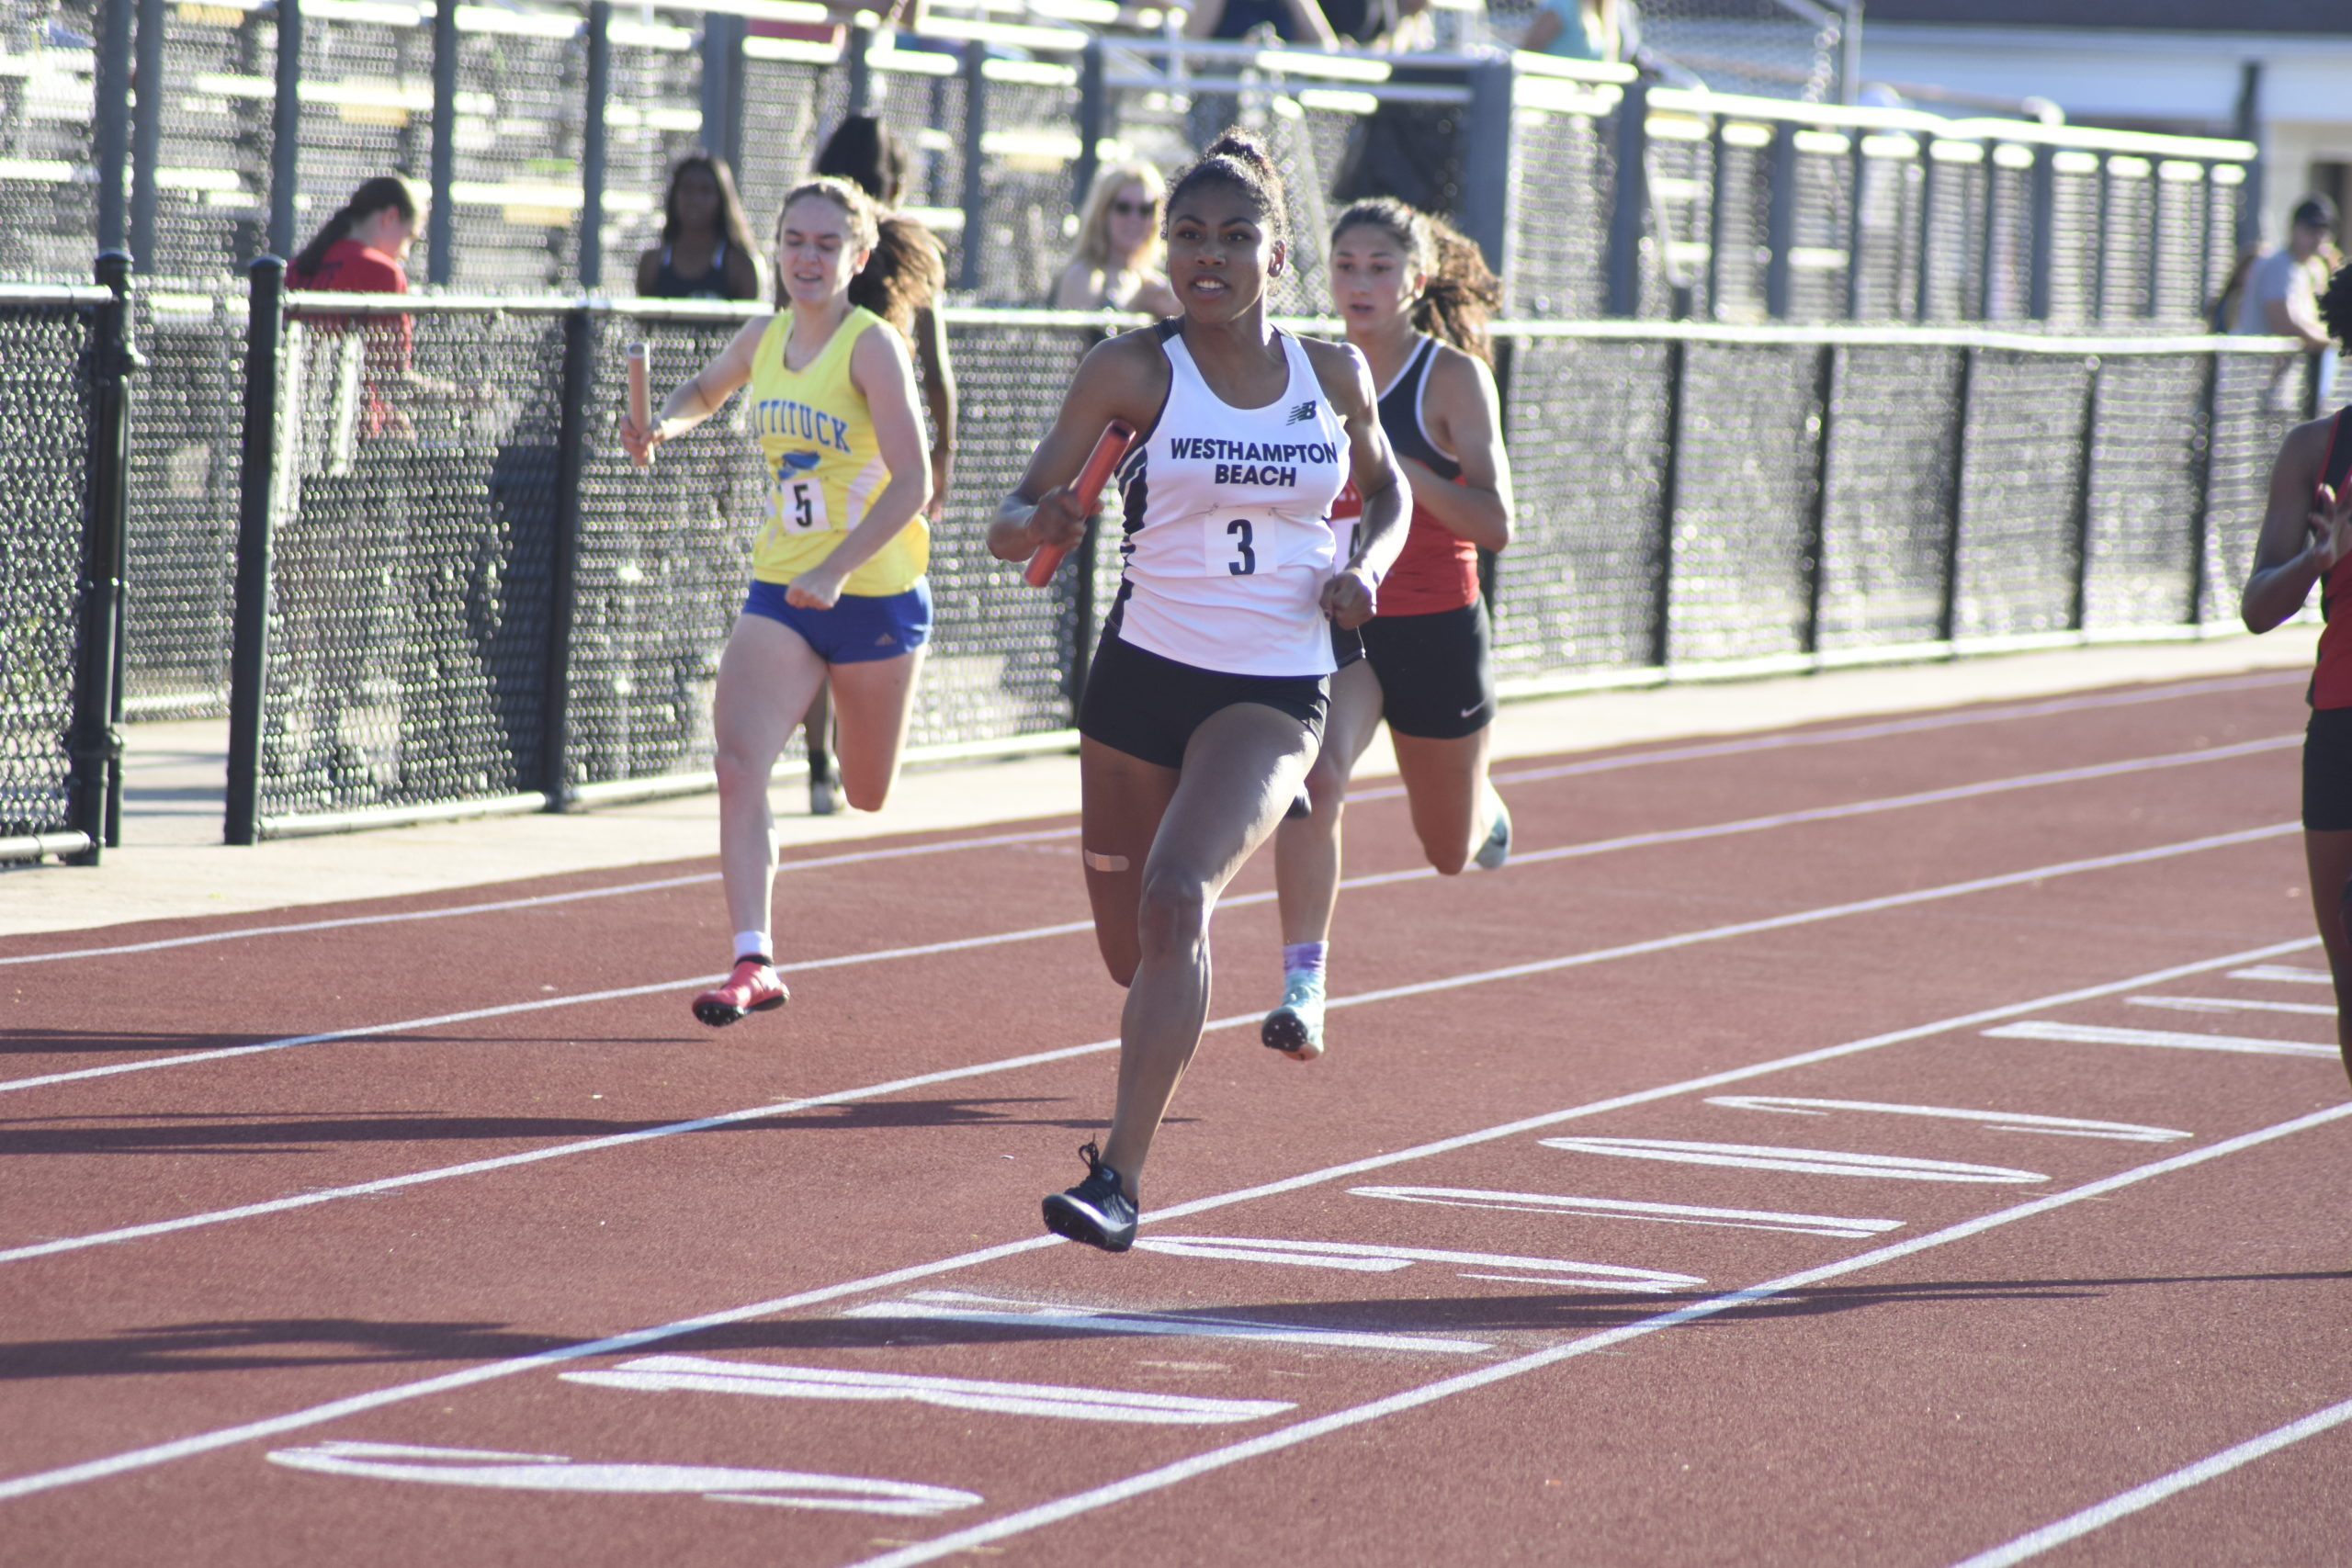 Oceane Ode finishing the final leg of the 4x100-meter dash which placed second at counties.